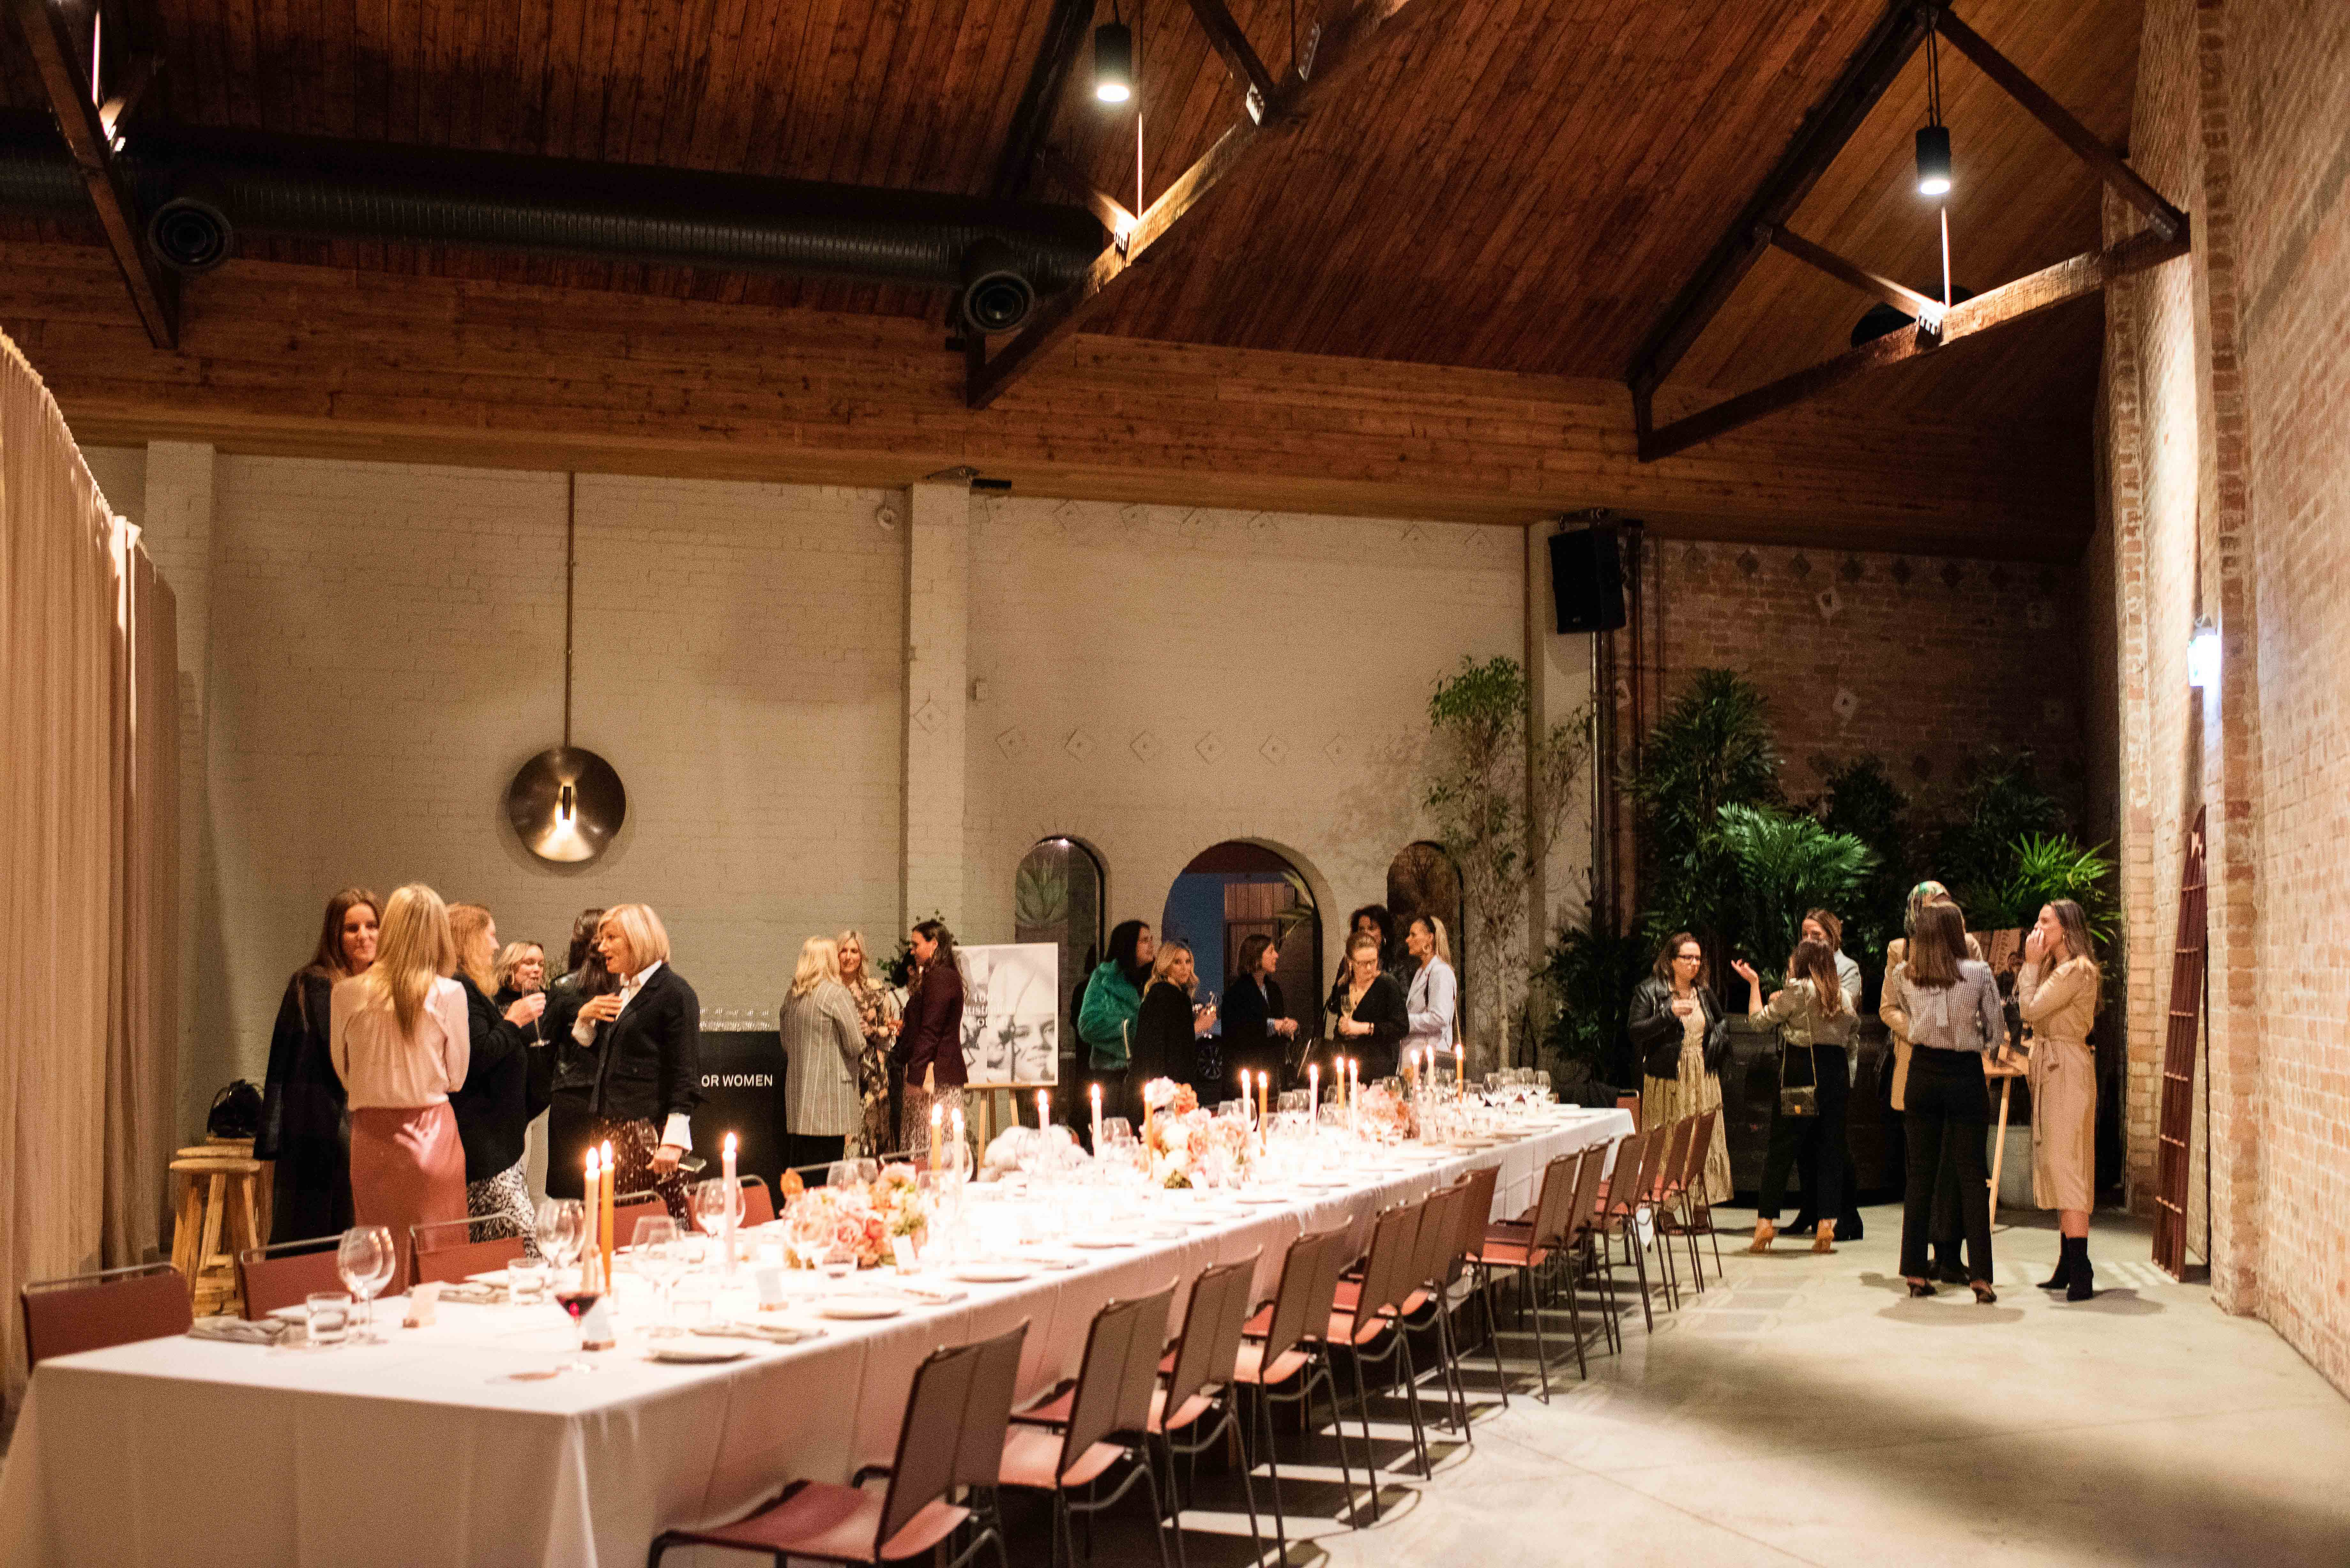 Sussan Only for Women Dinner